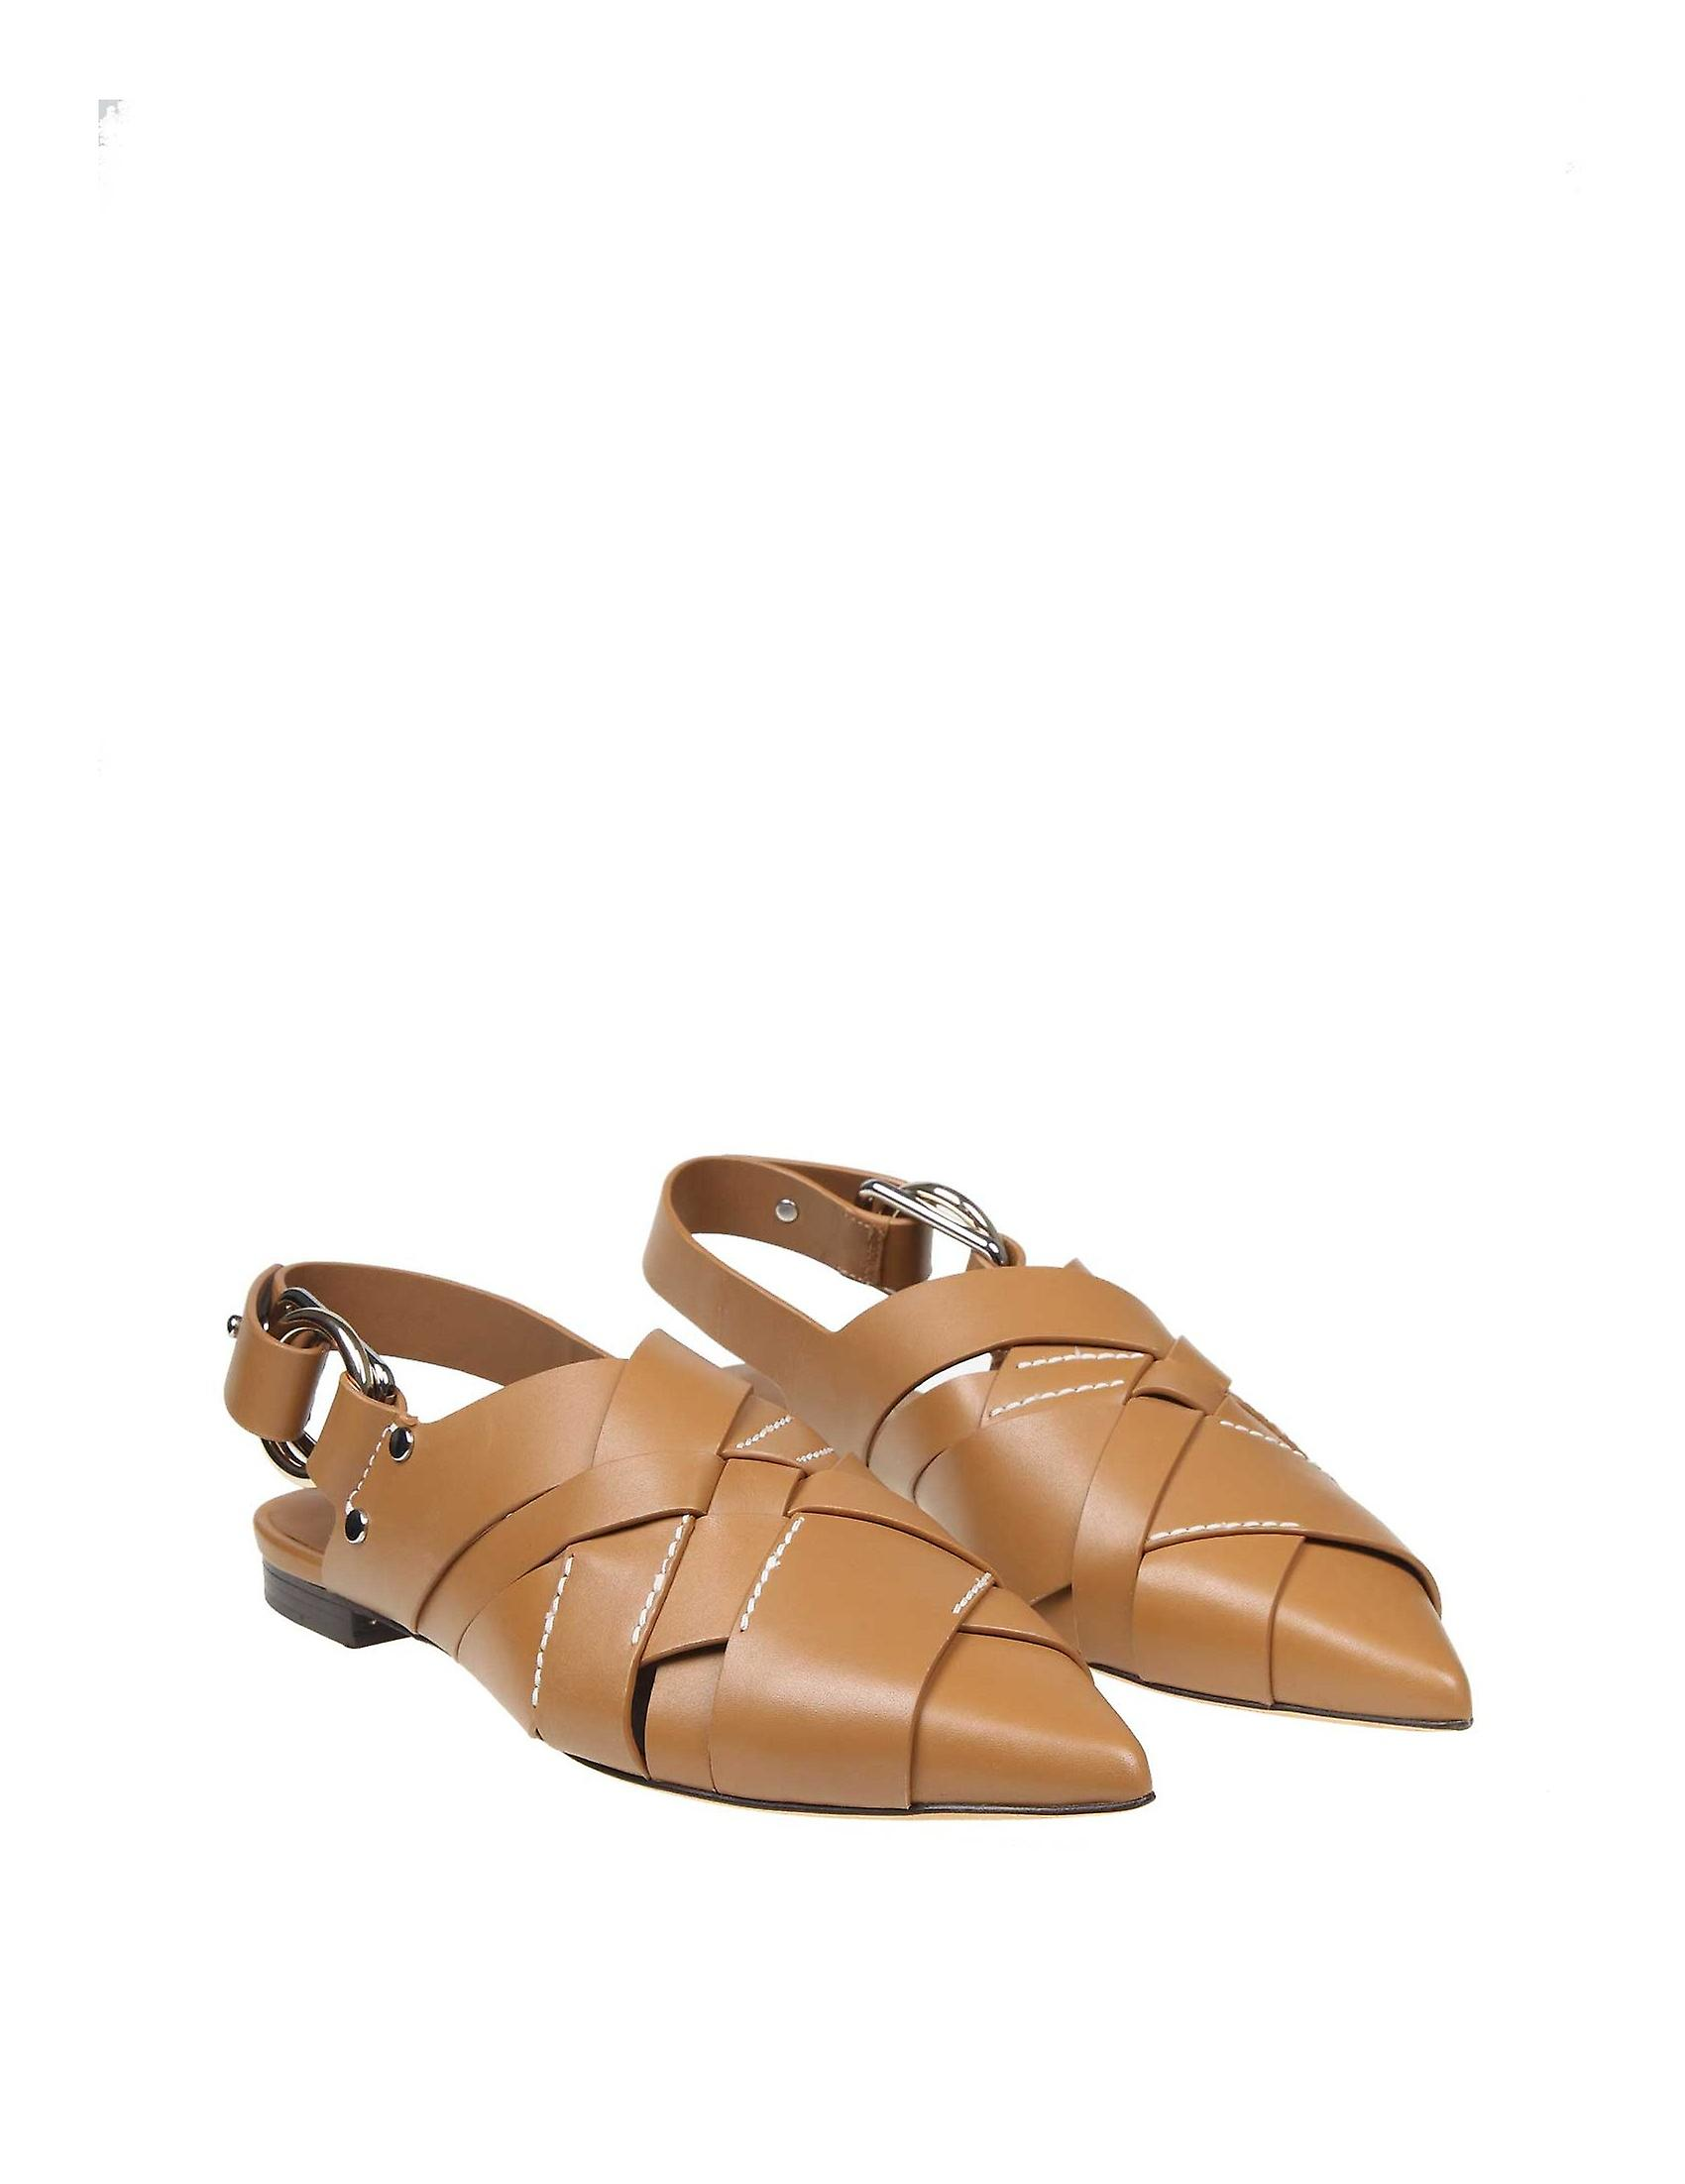 3.1 Phillip Lim Sse0t681jarca250 Women's Brown Leather Slippers